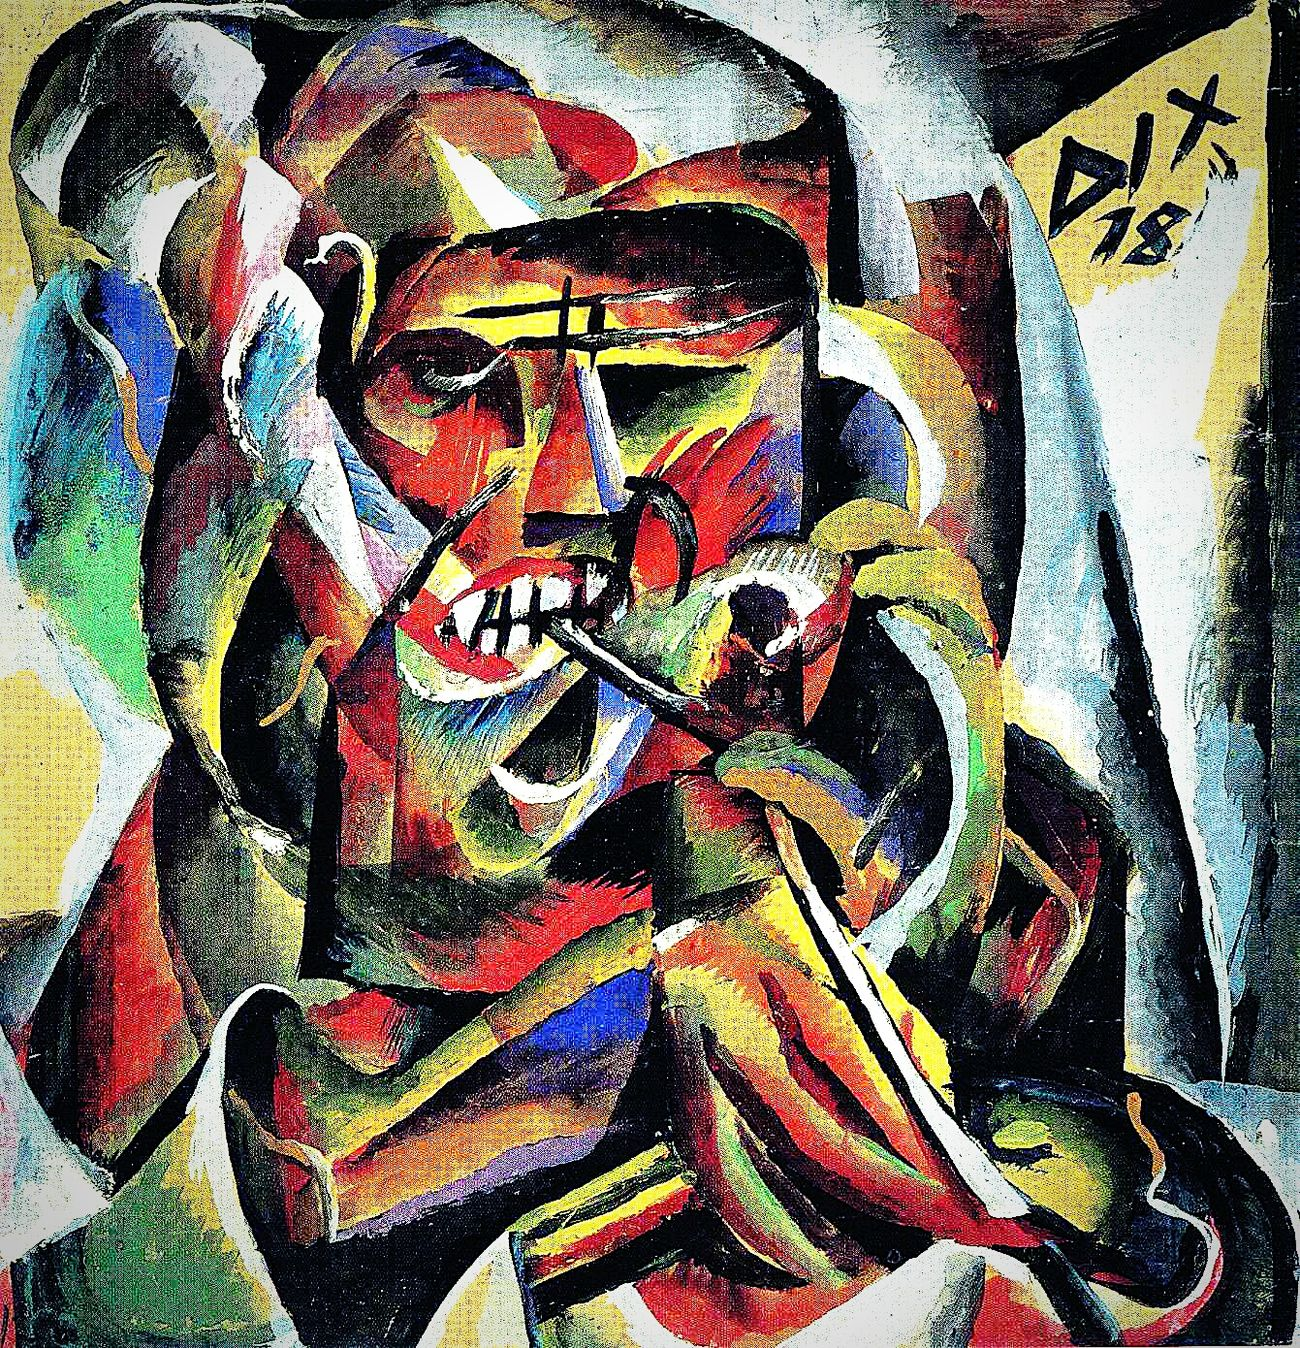 Otto Dix Historical Avantgarde Expressionism Art Gallery Art Museum Virtual Web Museum Of Contemporary Art Espressionism Espressionismo Tedesco Avanguardie Storiche ArtWork